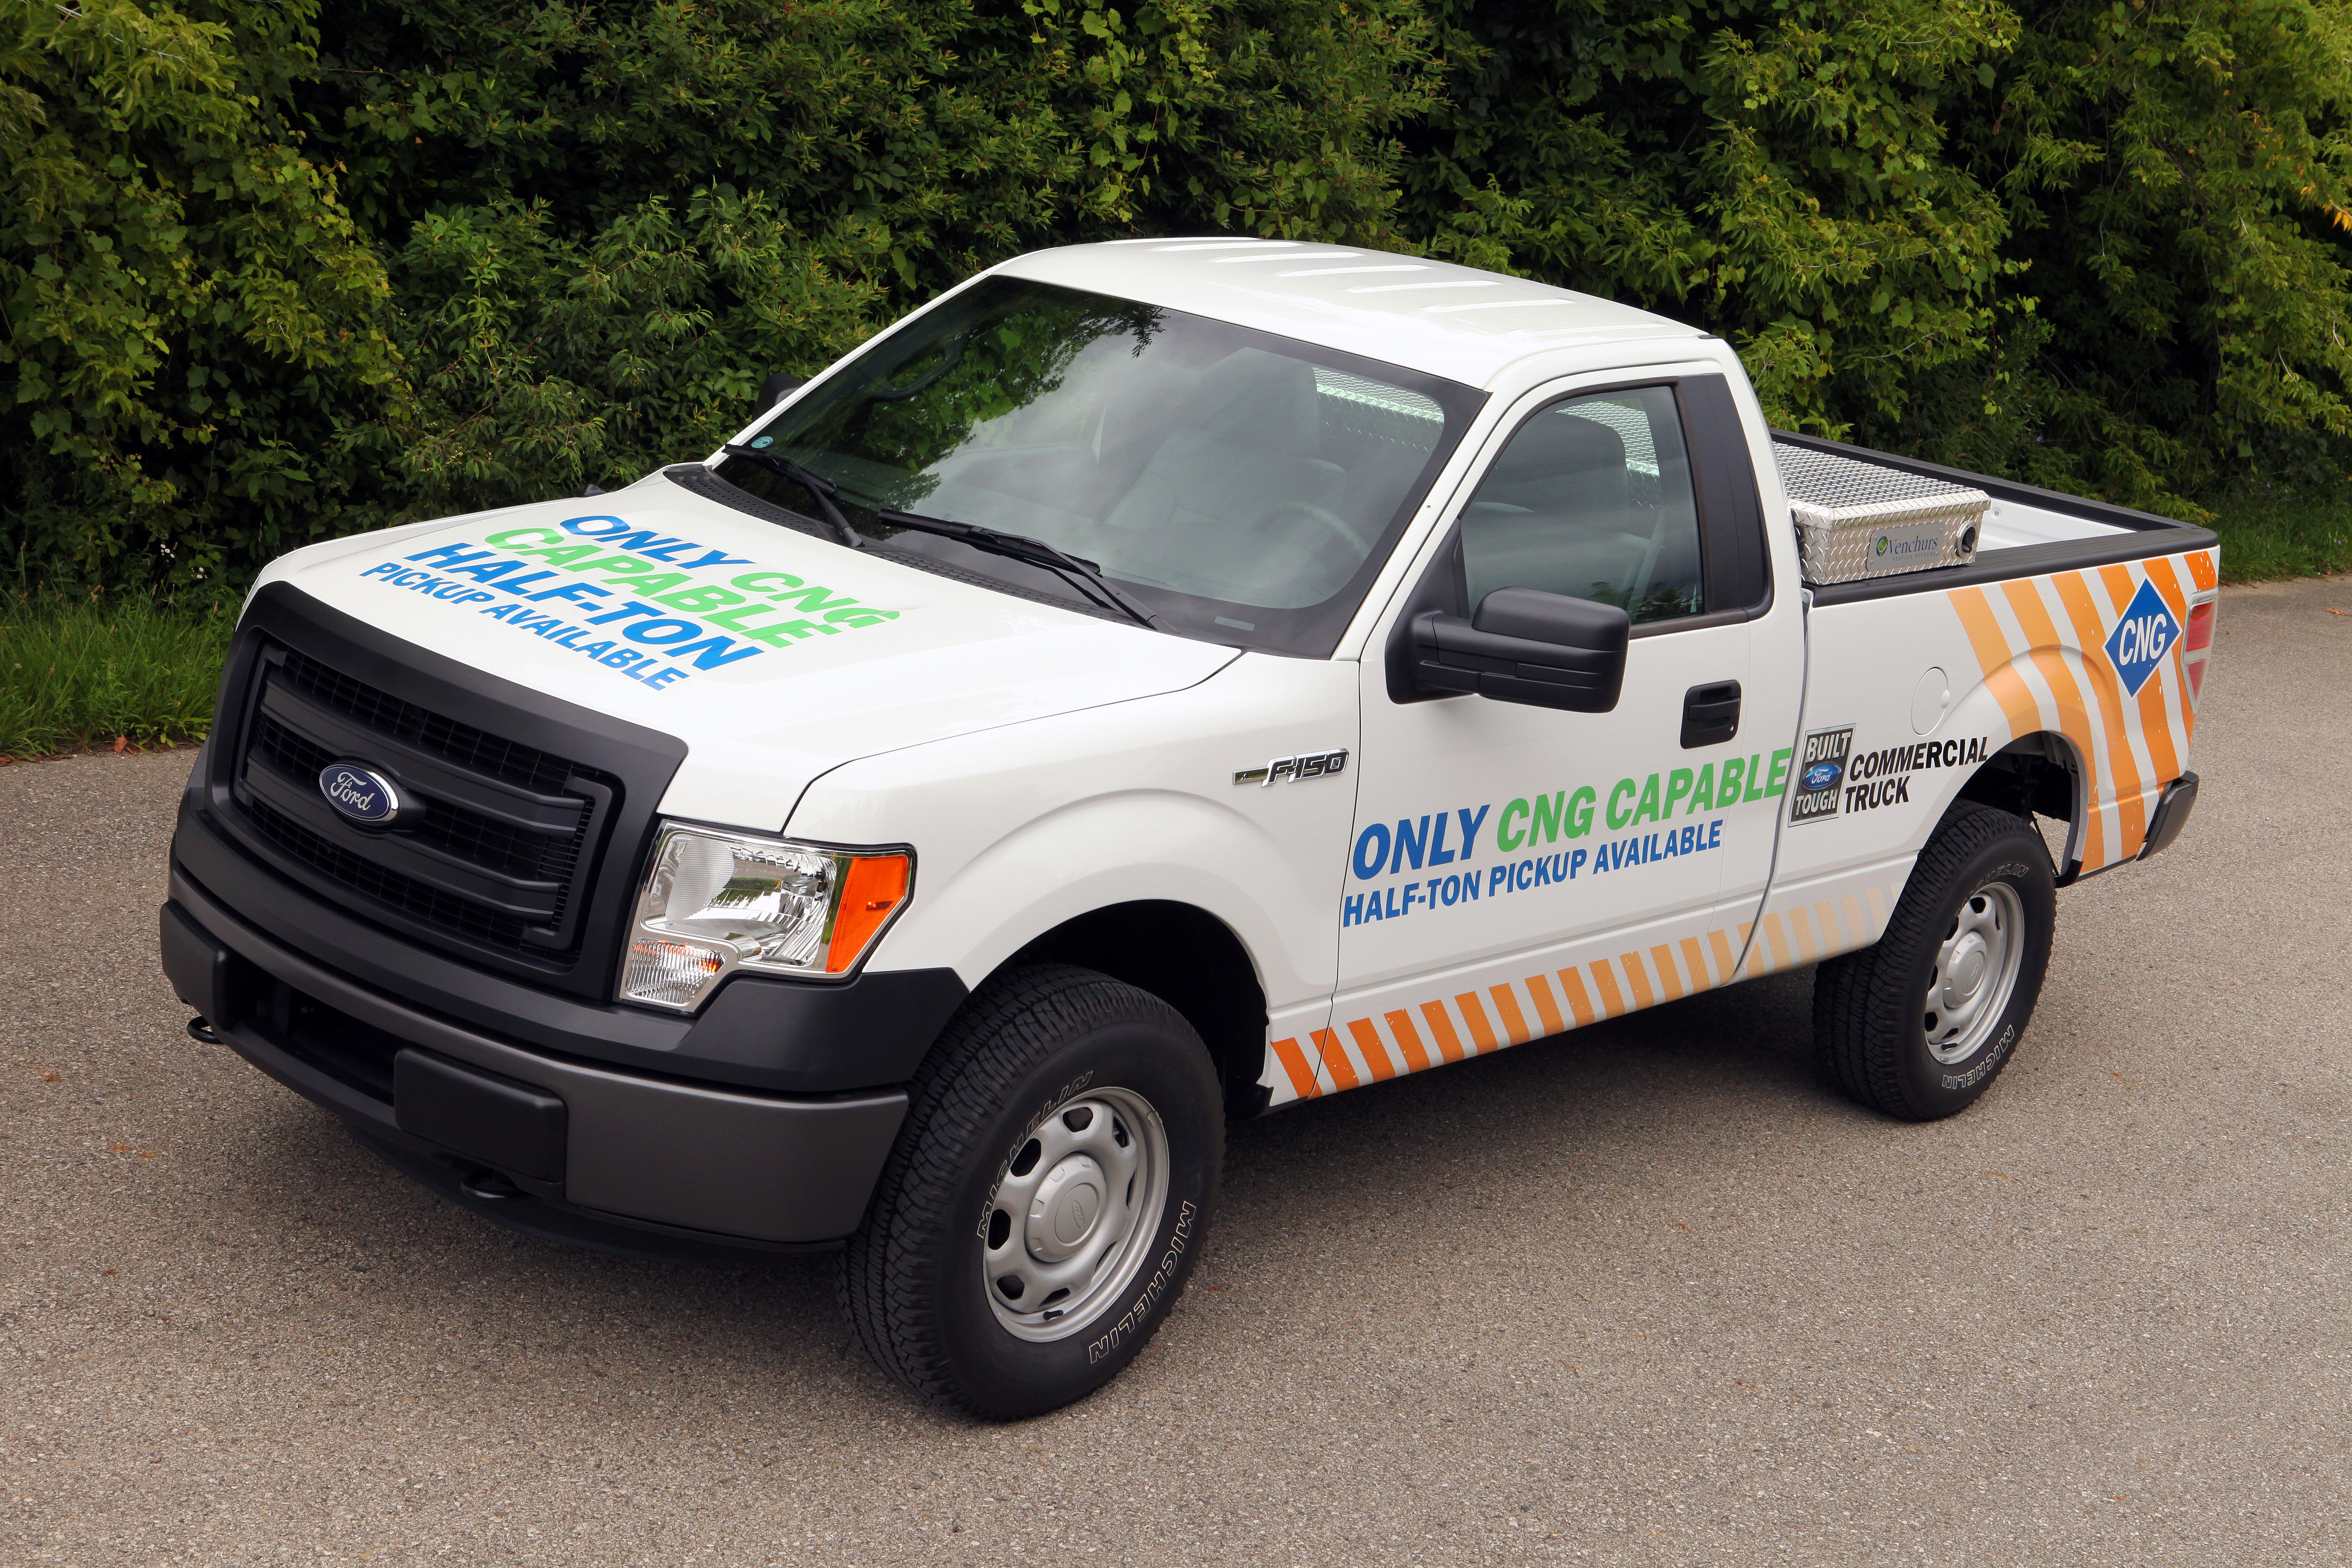 The 2014 Ford F-150 gets compressed natural gas option